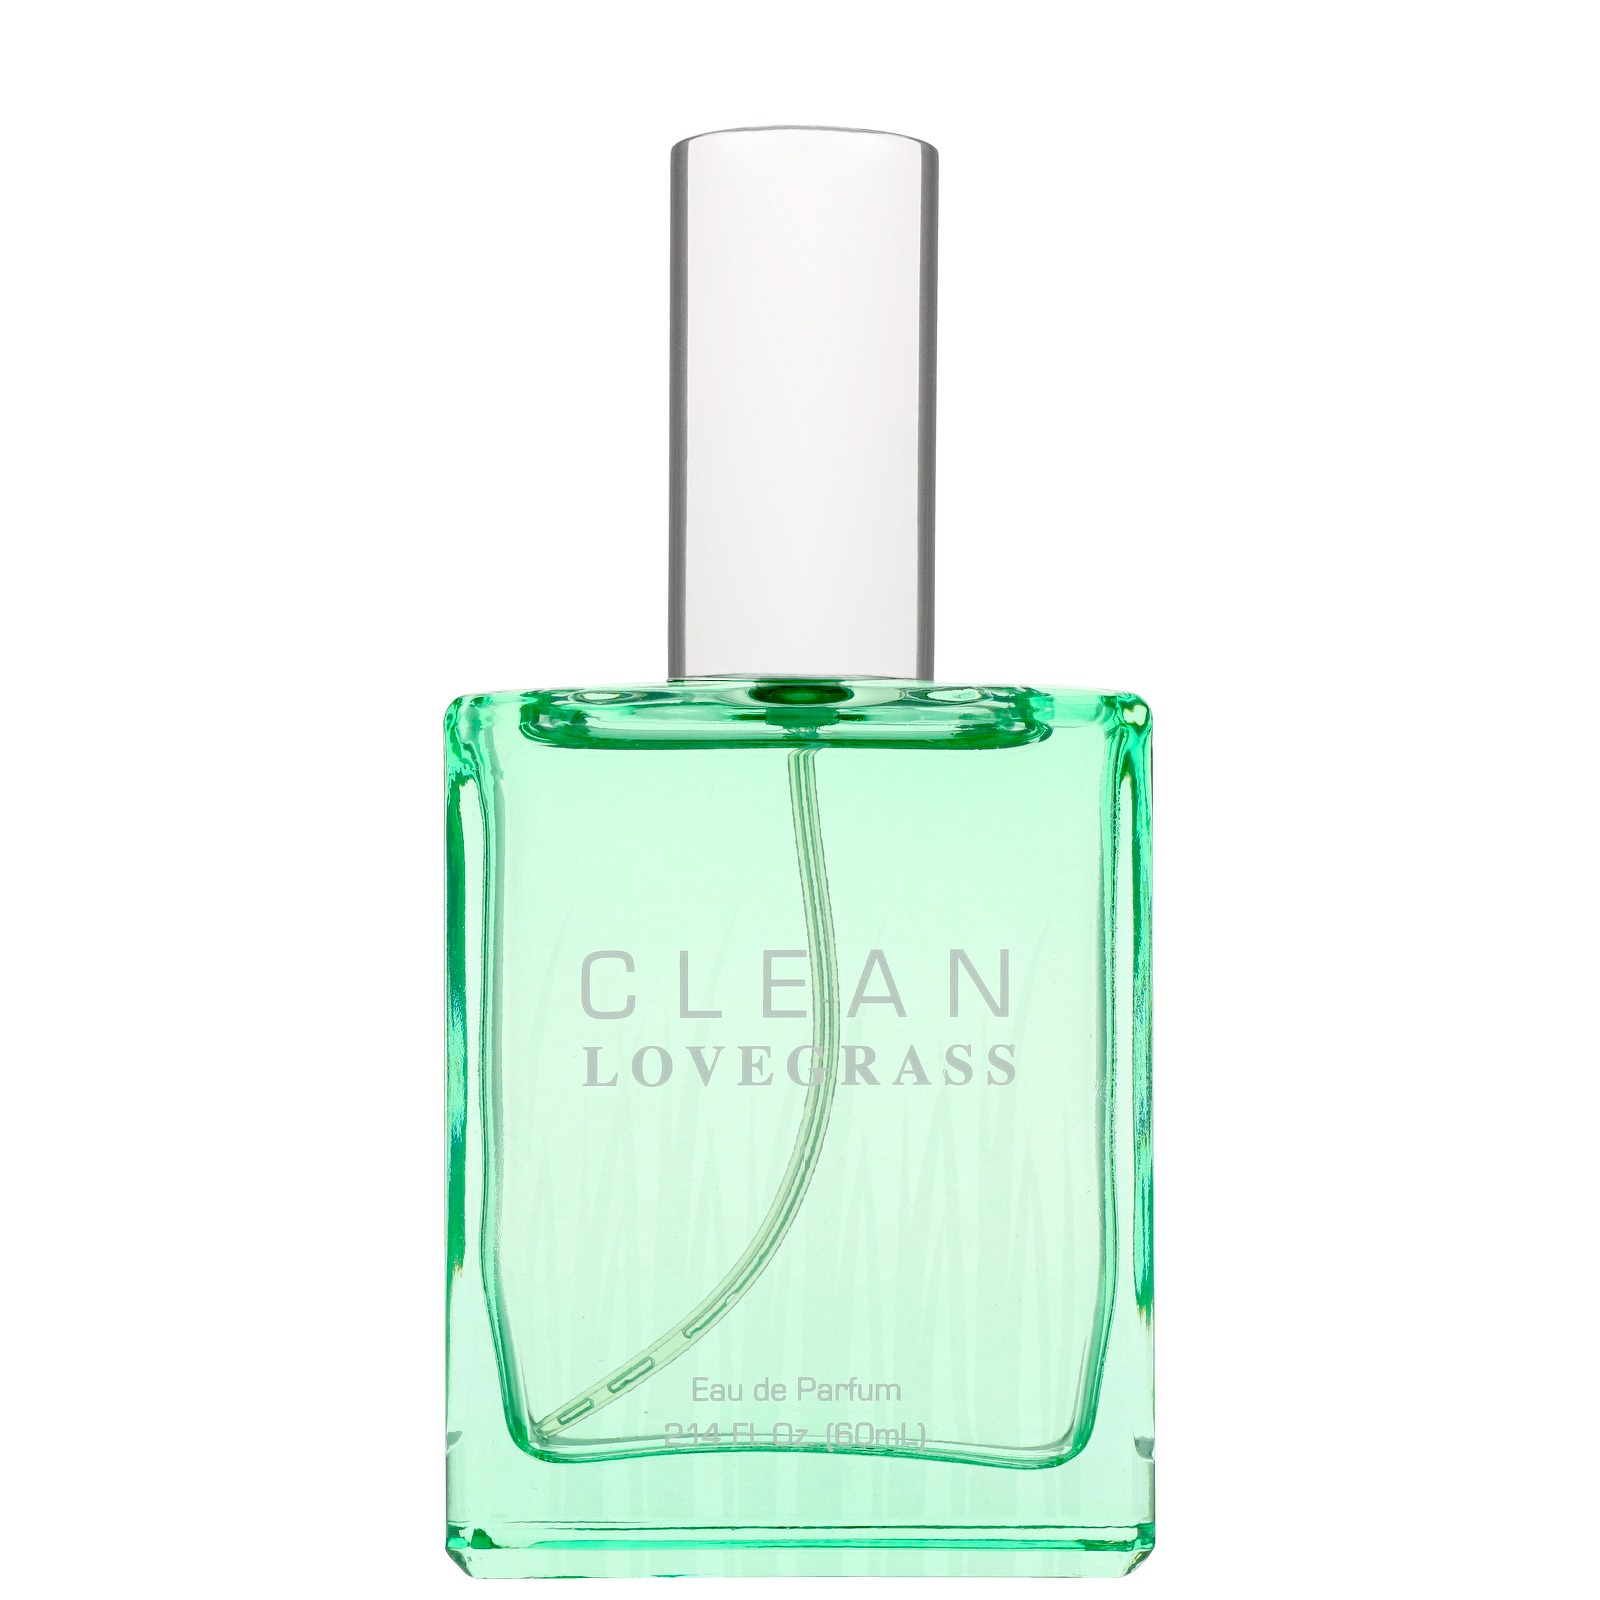 CLEAN Love Grass Eau de Parfum Spray 60ml